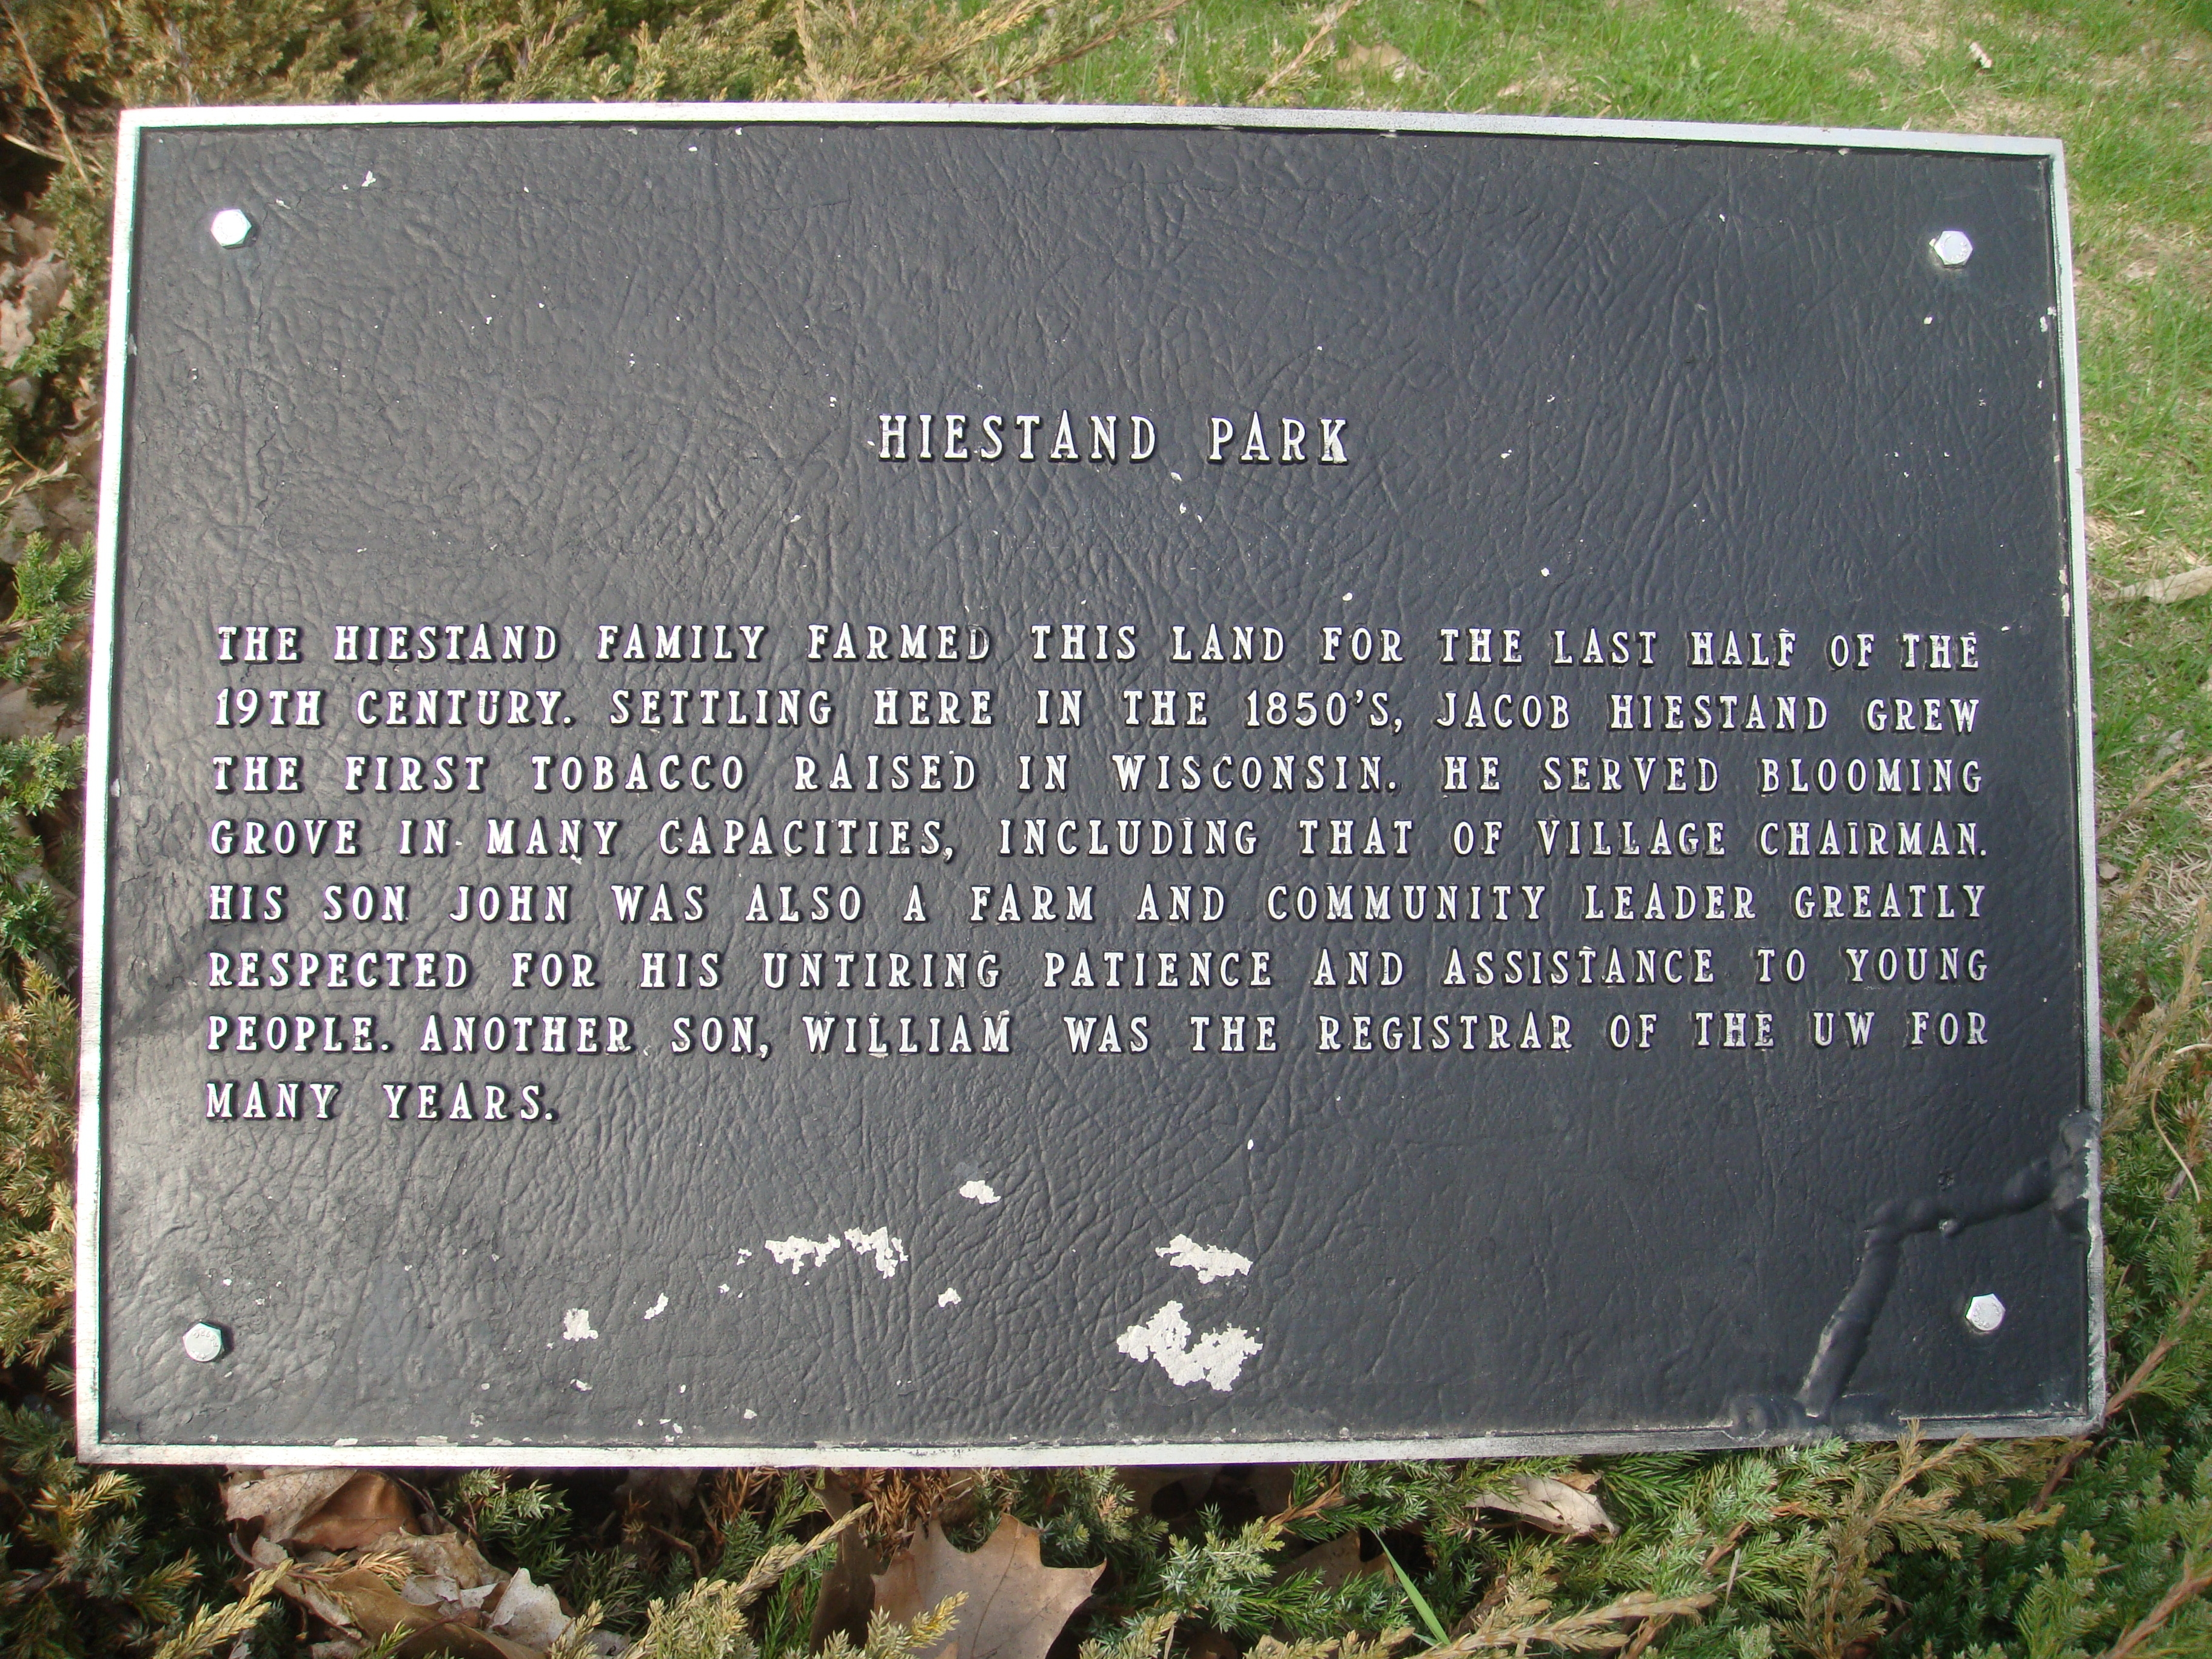 Hiestand Park Marker